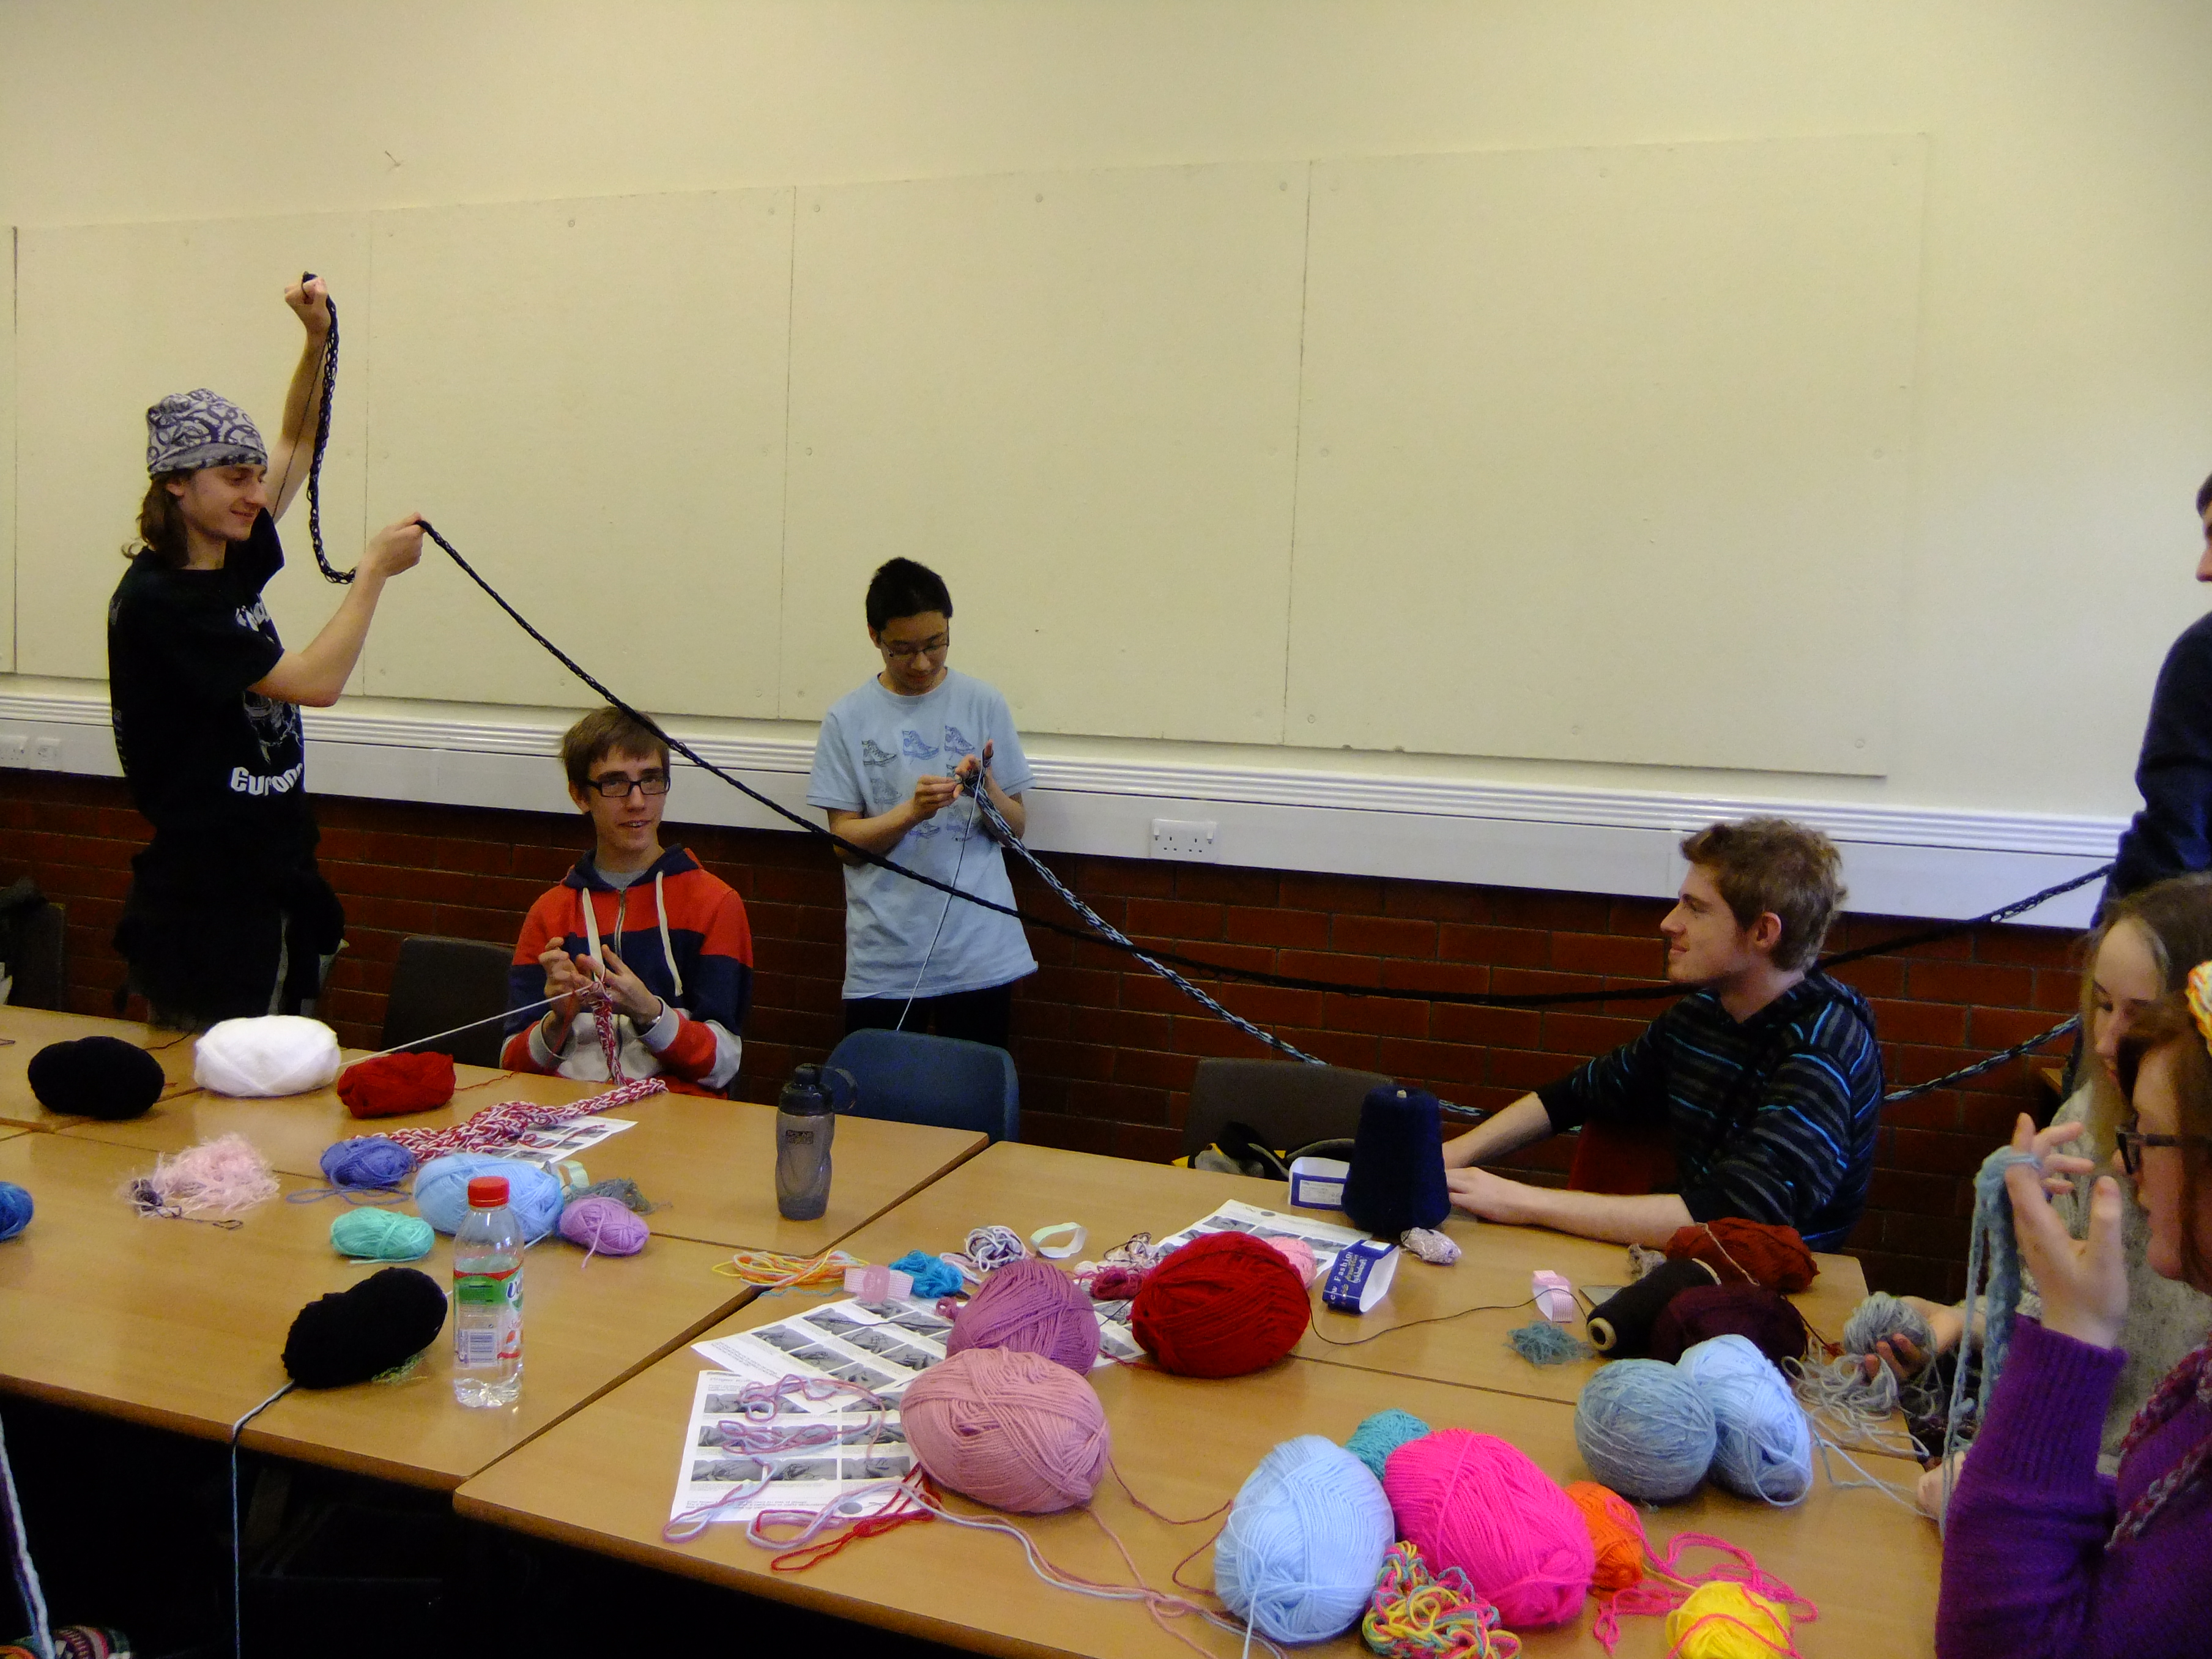 finger knitting session as part of a schools enrichment programme